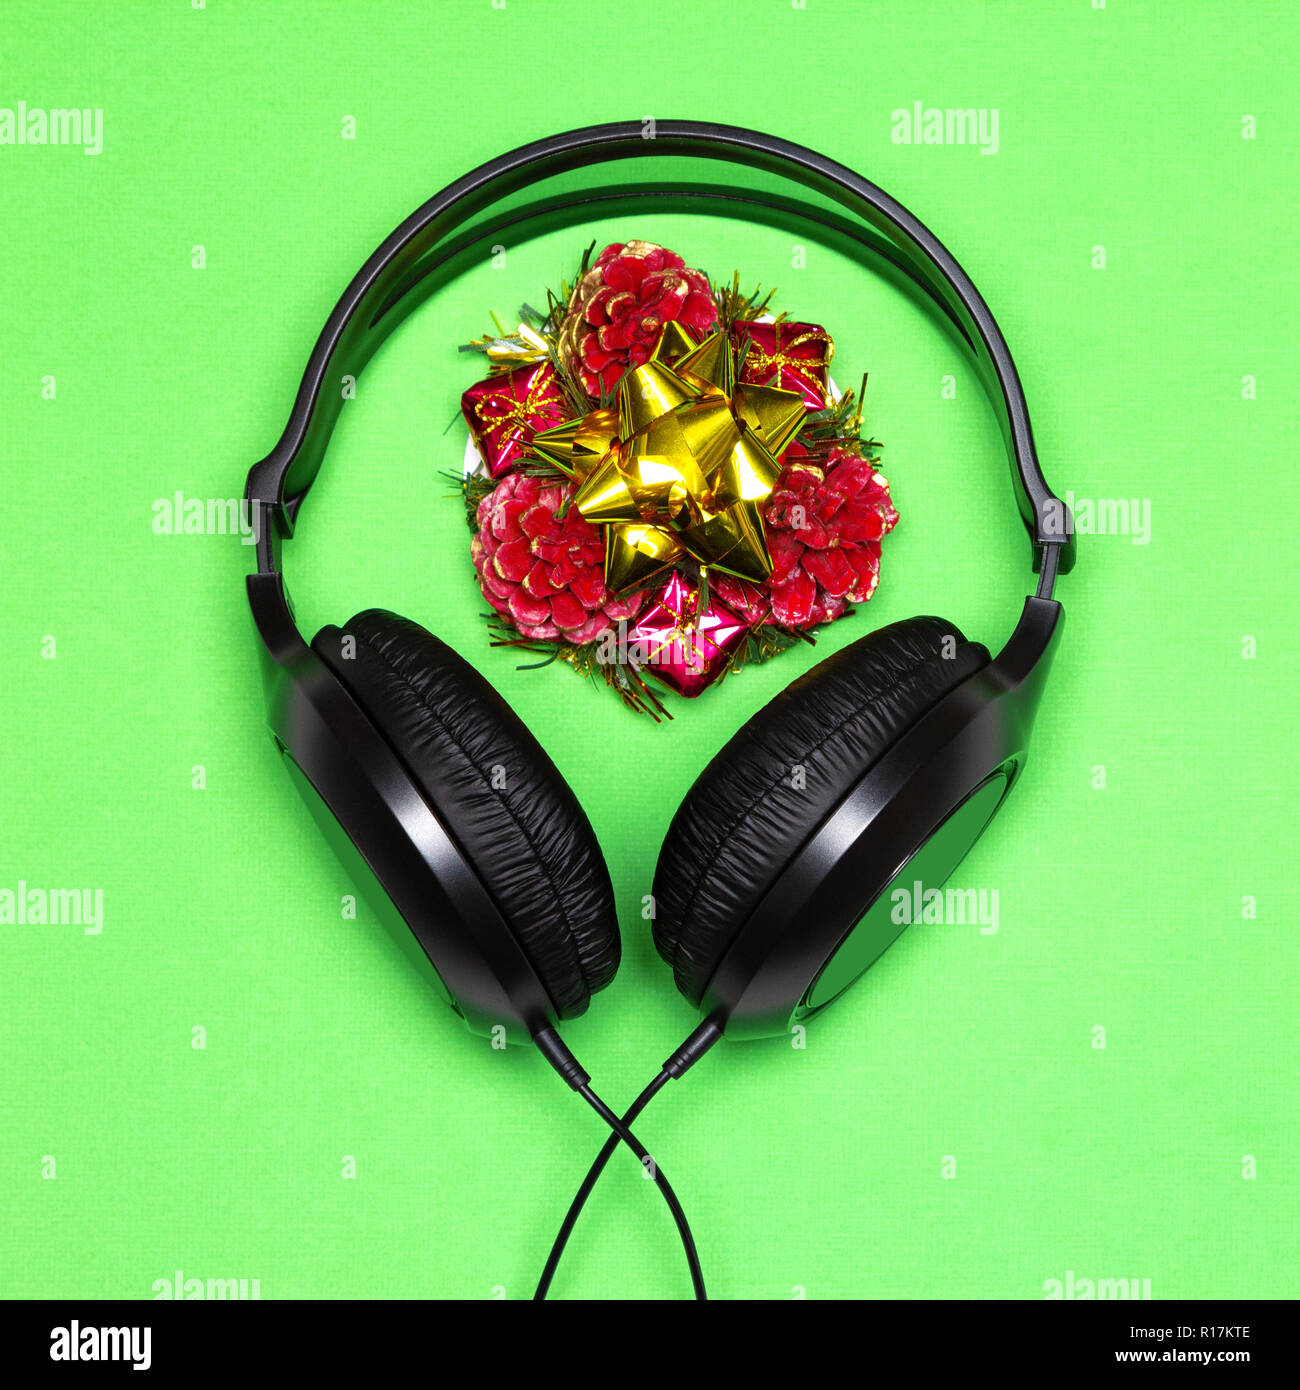 Headphones and New Year decorations. Christmas party music playlist. Xmas songs minimal concept - Stock Image